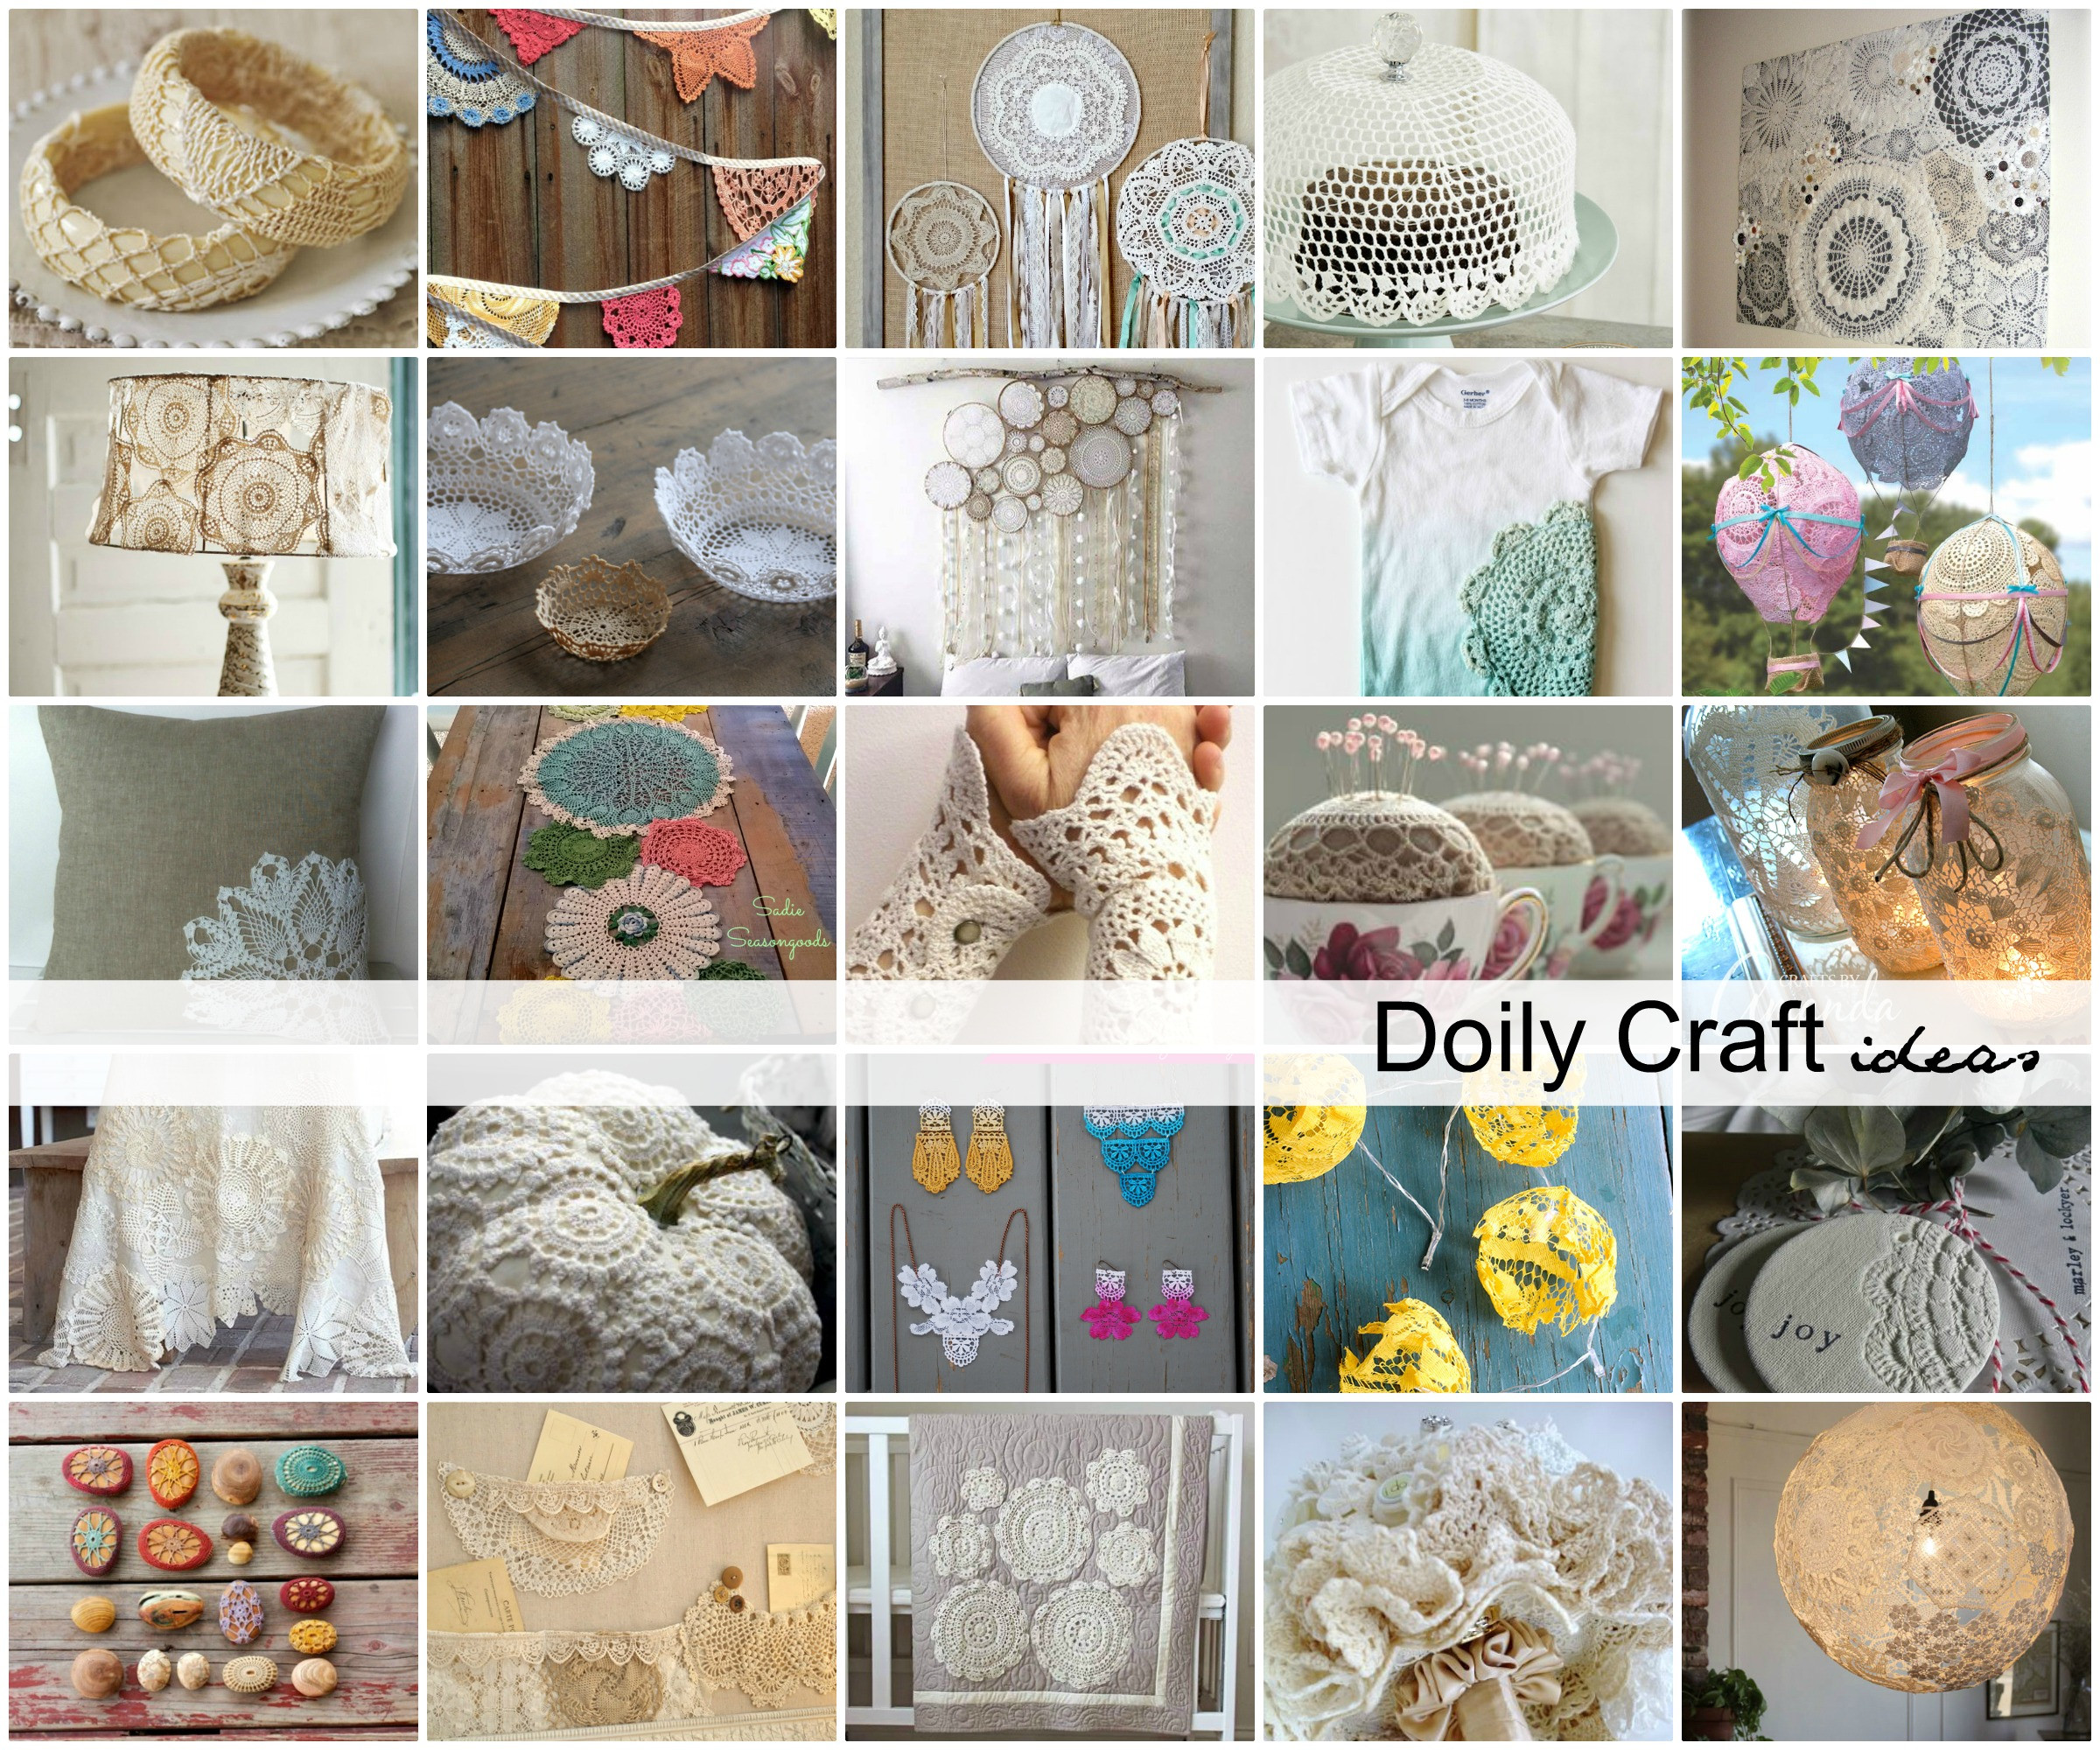 Doily Crafts Lovely Diy Doily Craft Ideas the Idea Room Of Contemporary 47 Photos Doily Crafts